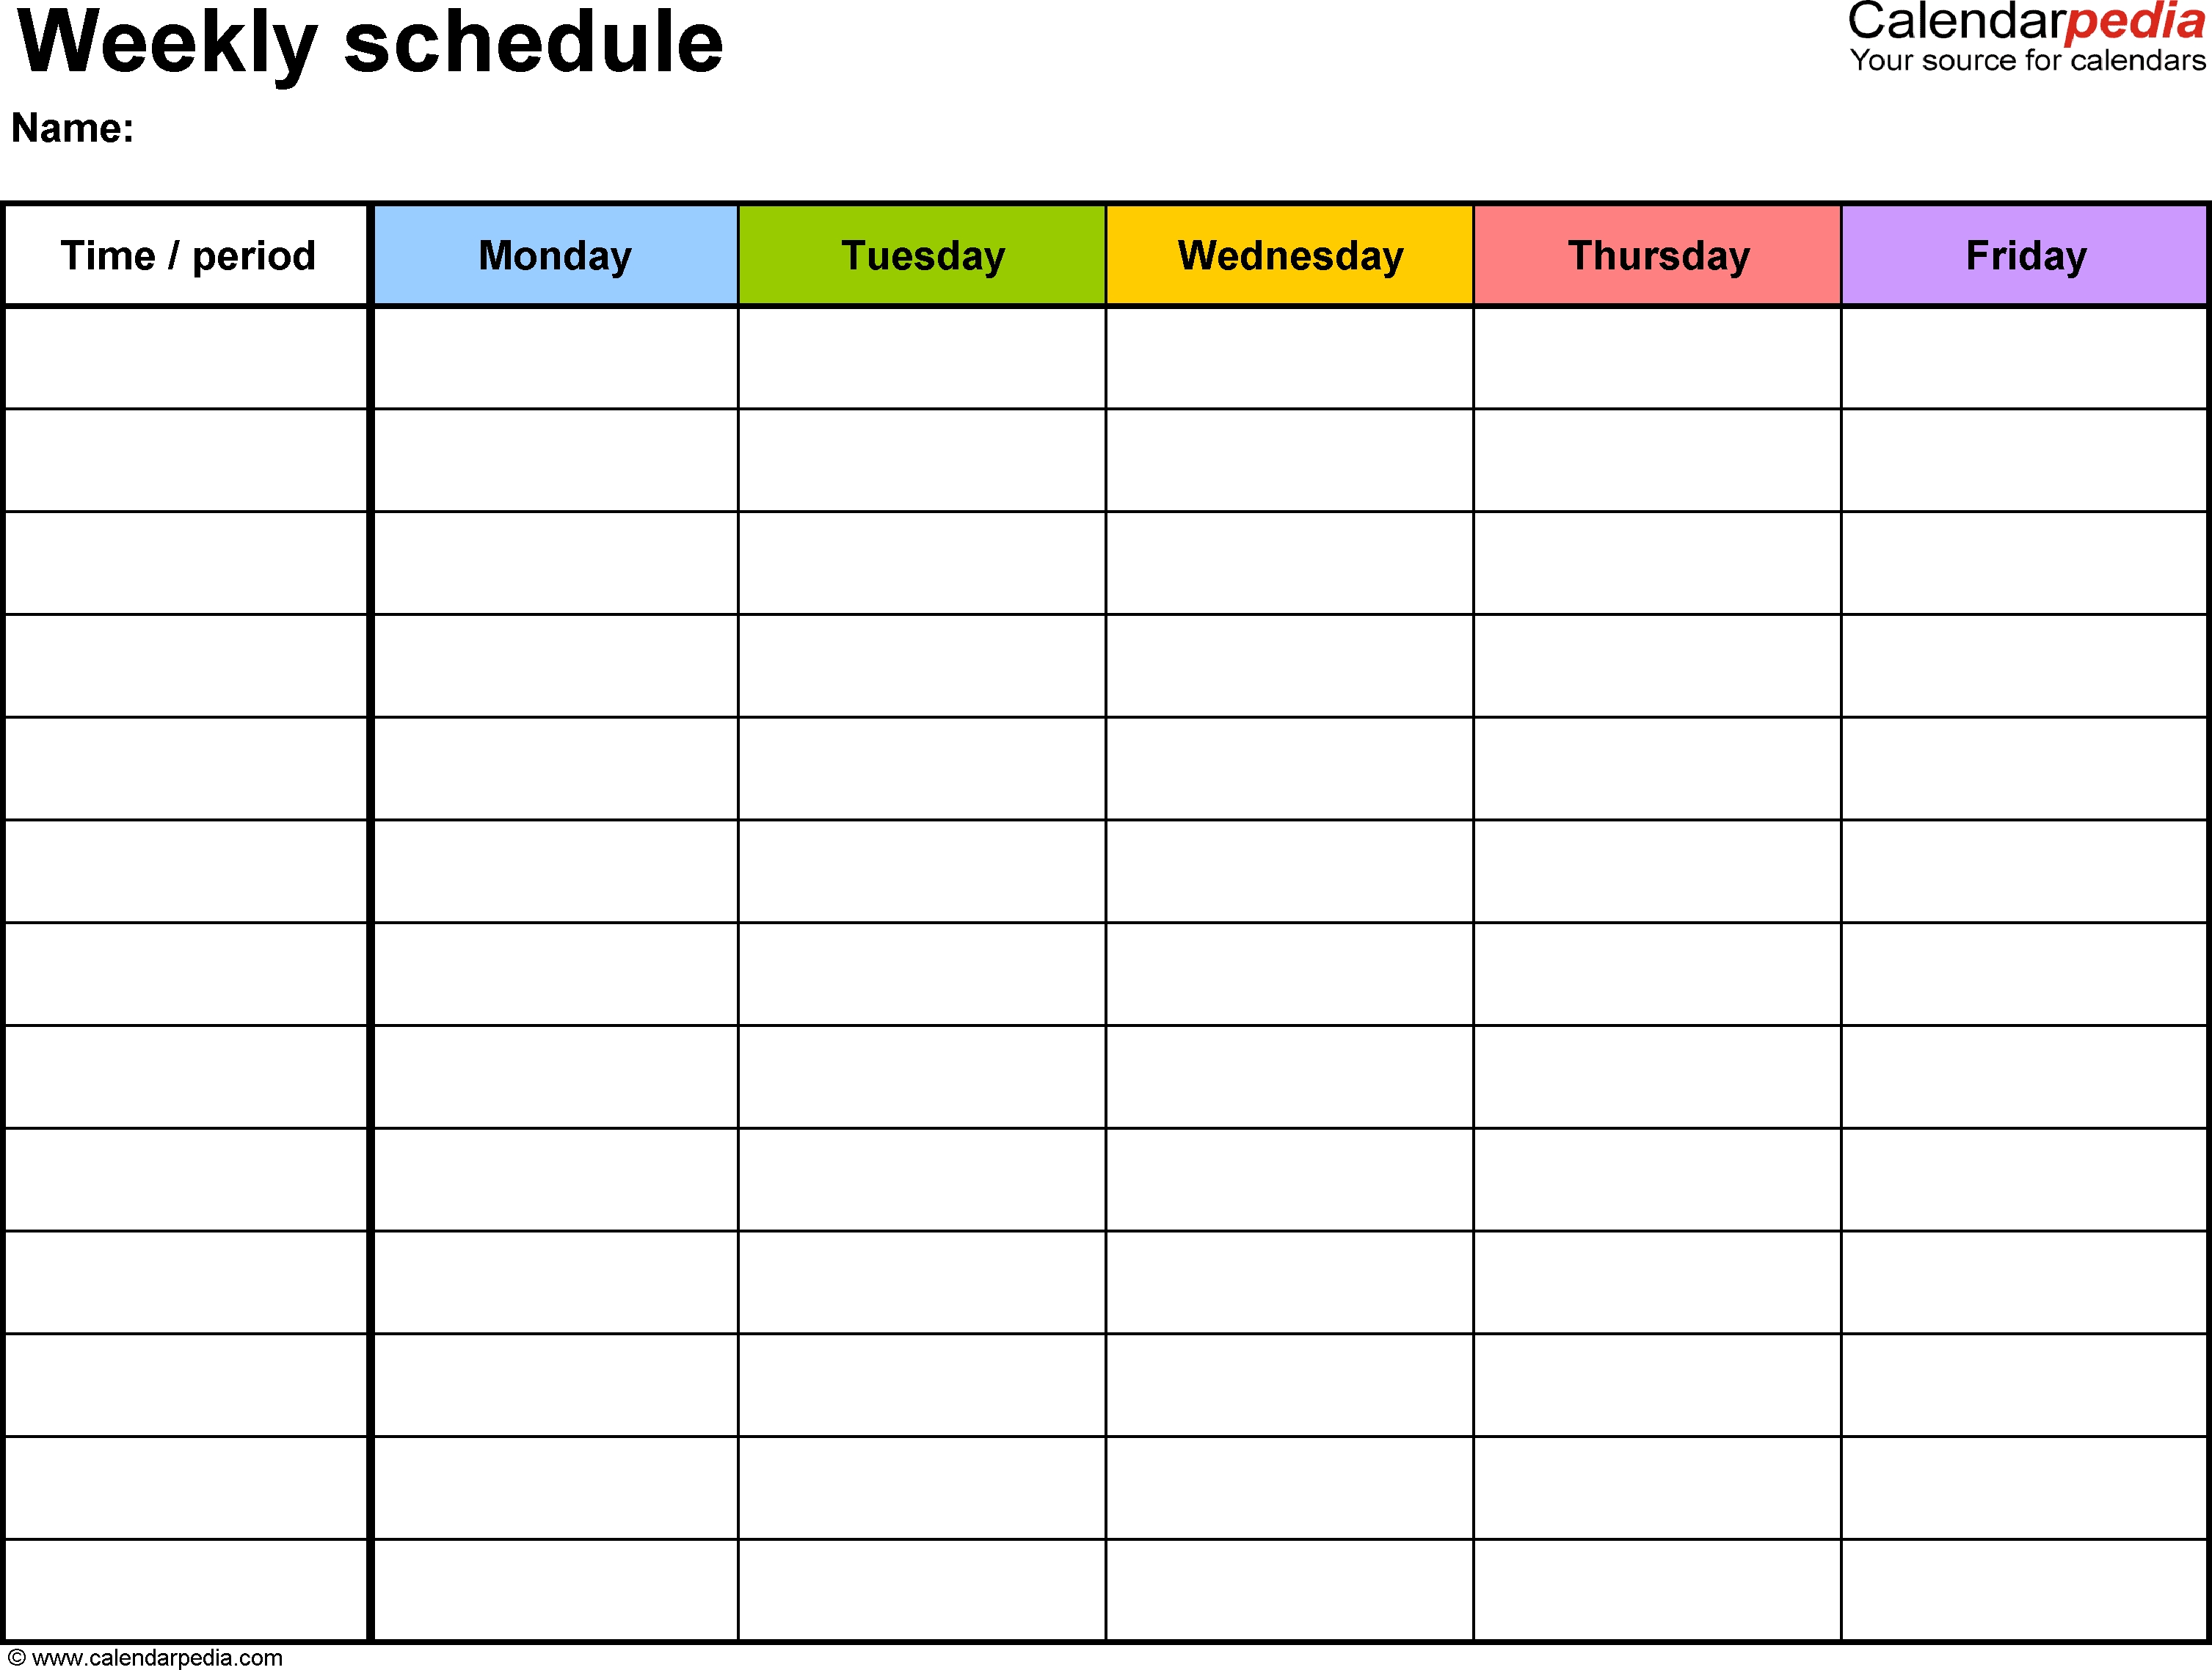 Free Weekly Schedule Templates For Word - 18 Templates in 5 Day Week Monthly Calendar Templates